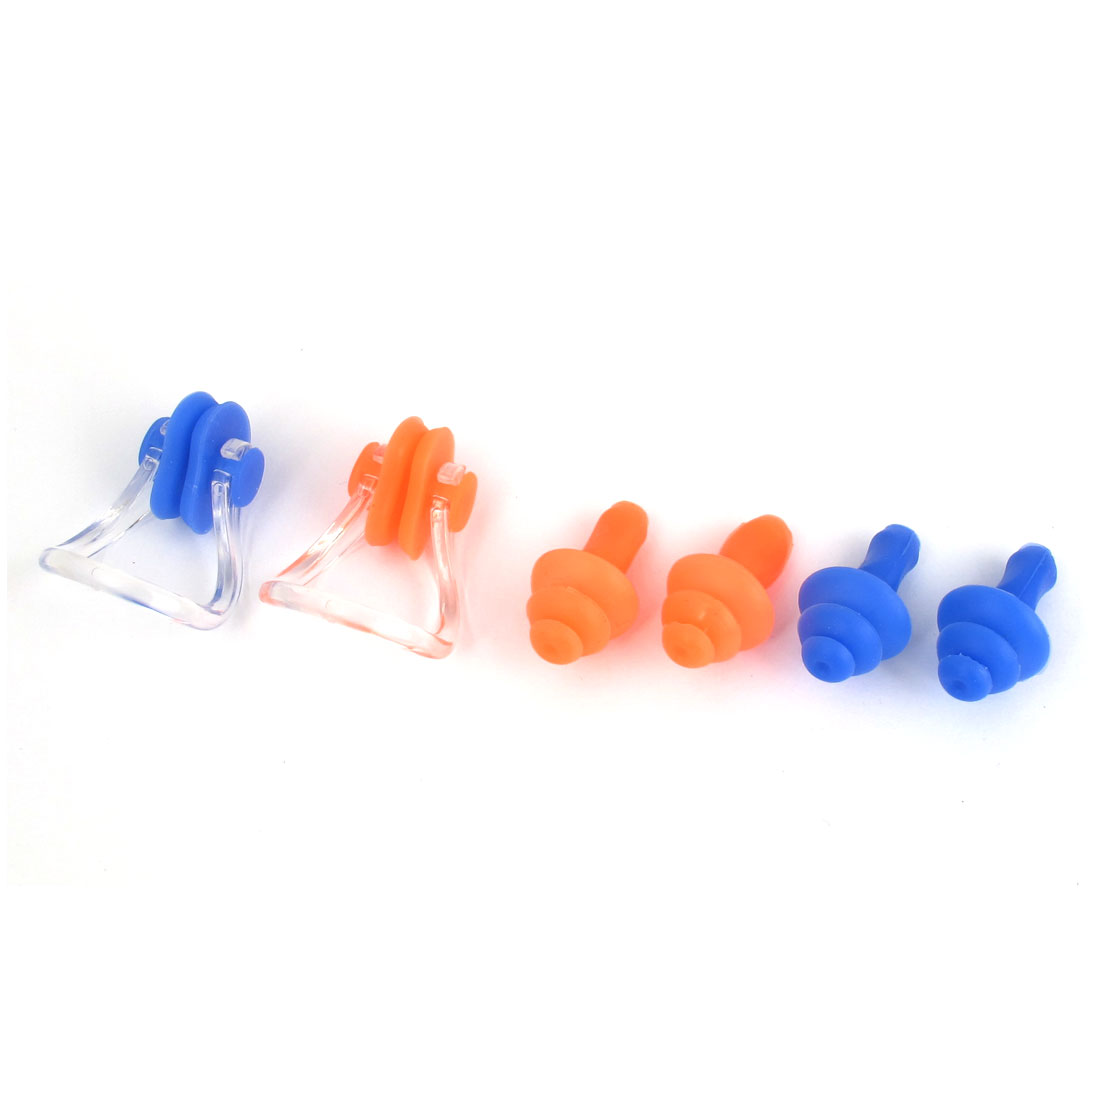 Swim Swimming Diving Guard Tool Protector Orange Blue Ear Earplugs Nose Clip 2 Set